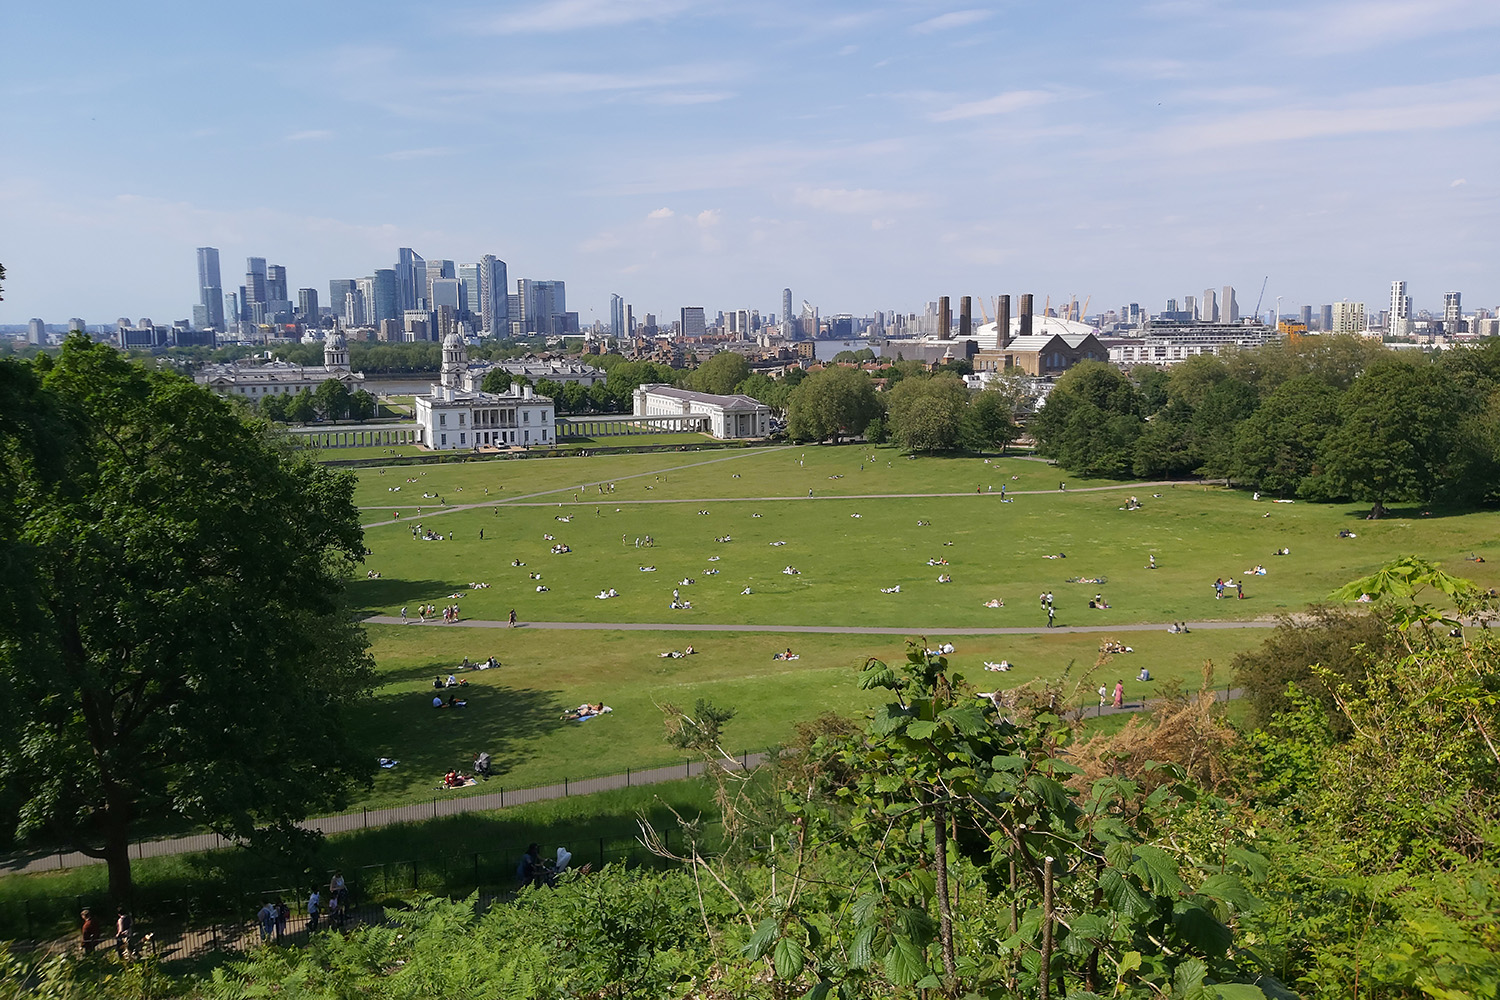 View from the Royal Observatory to the Queen's House and Canary Wharf